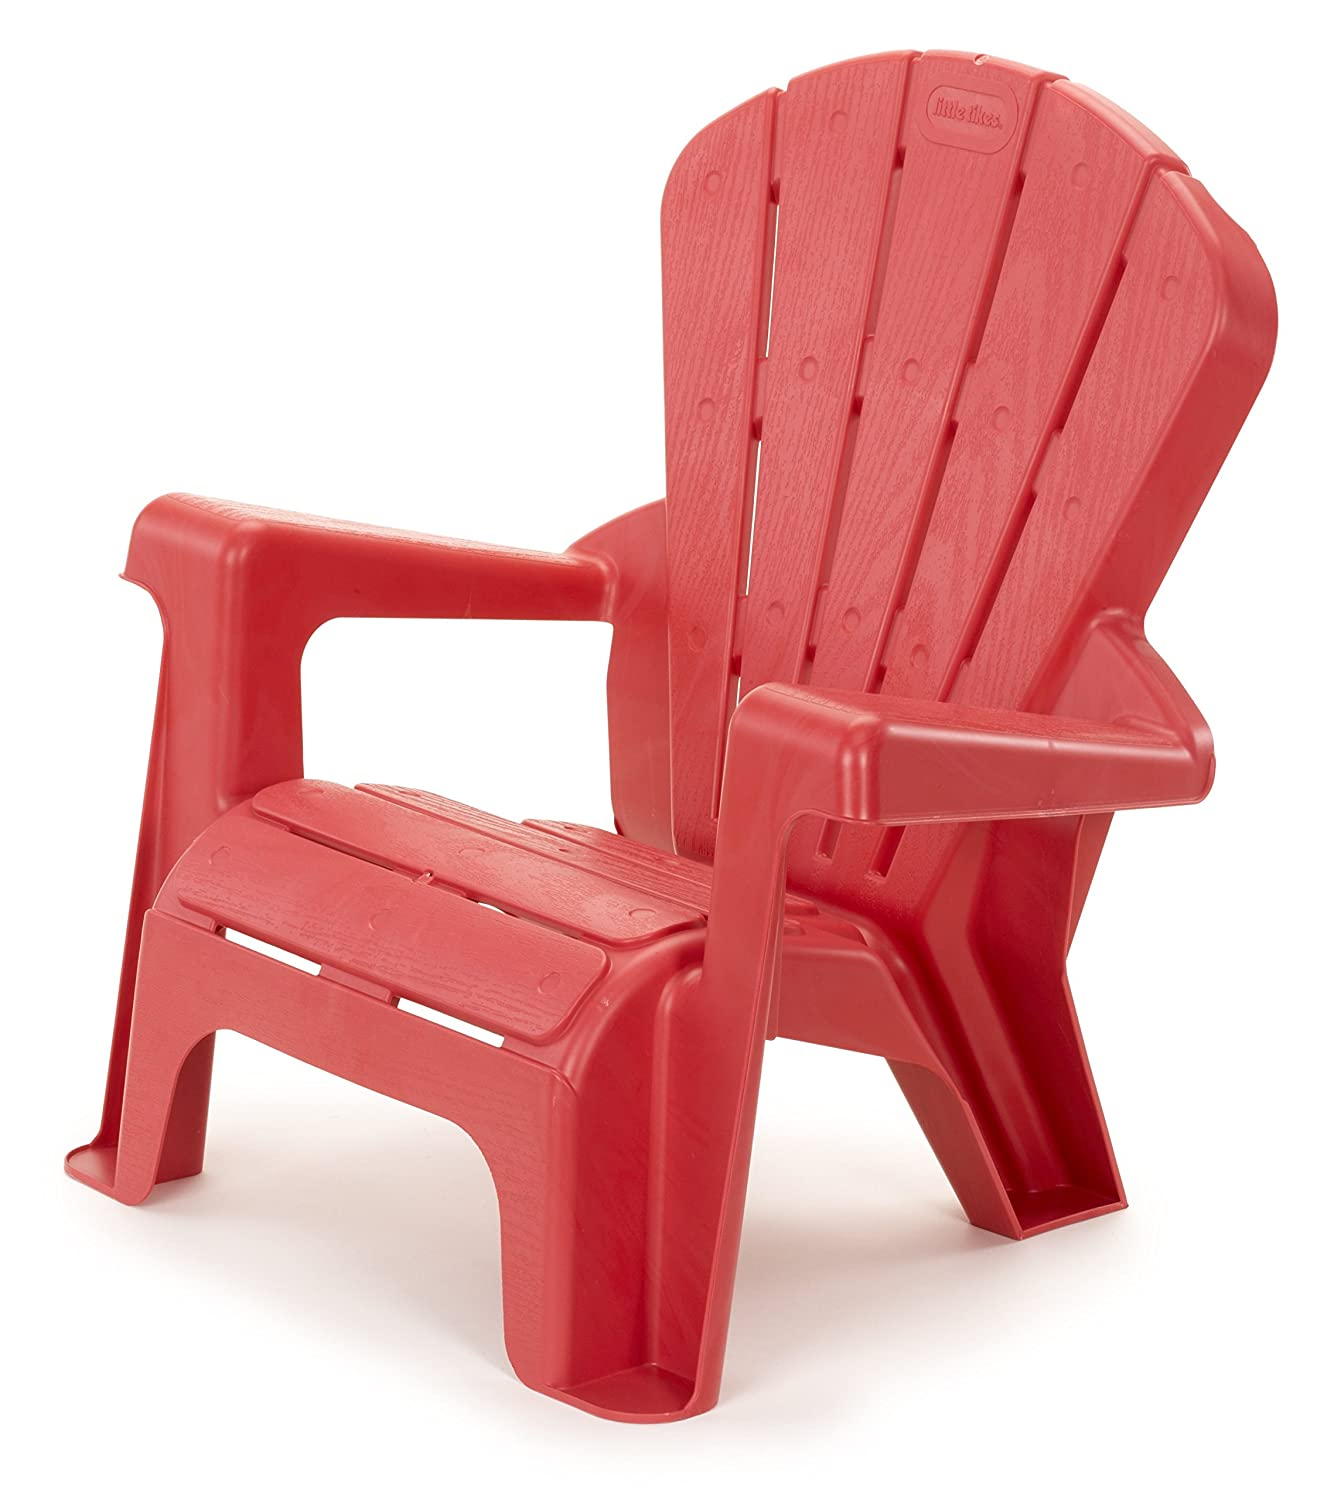 Amazon Little Tikes Garden Chair Red Baby